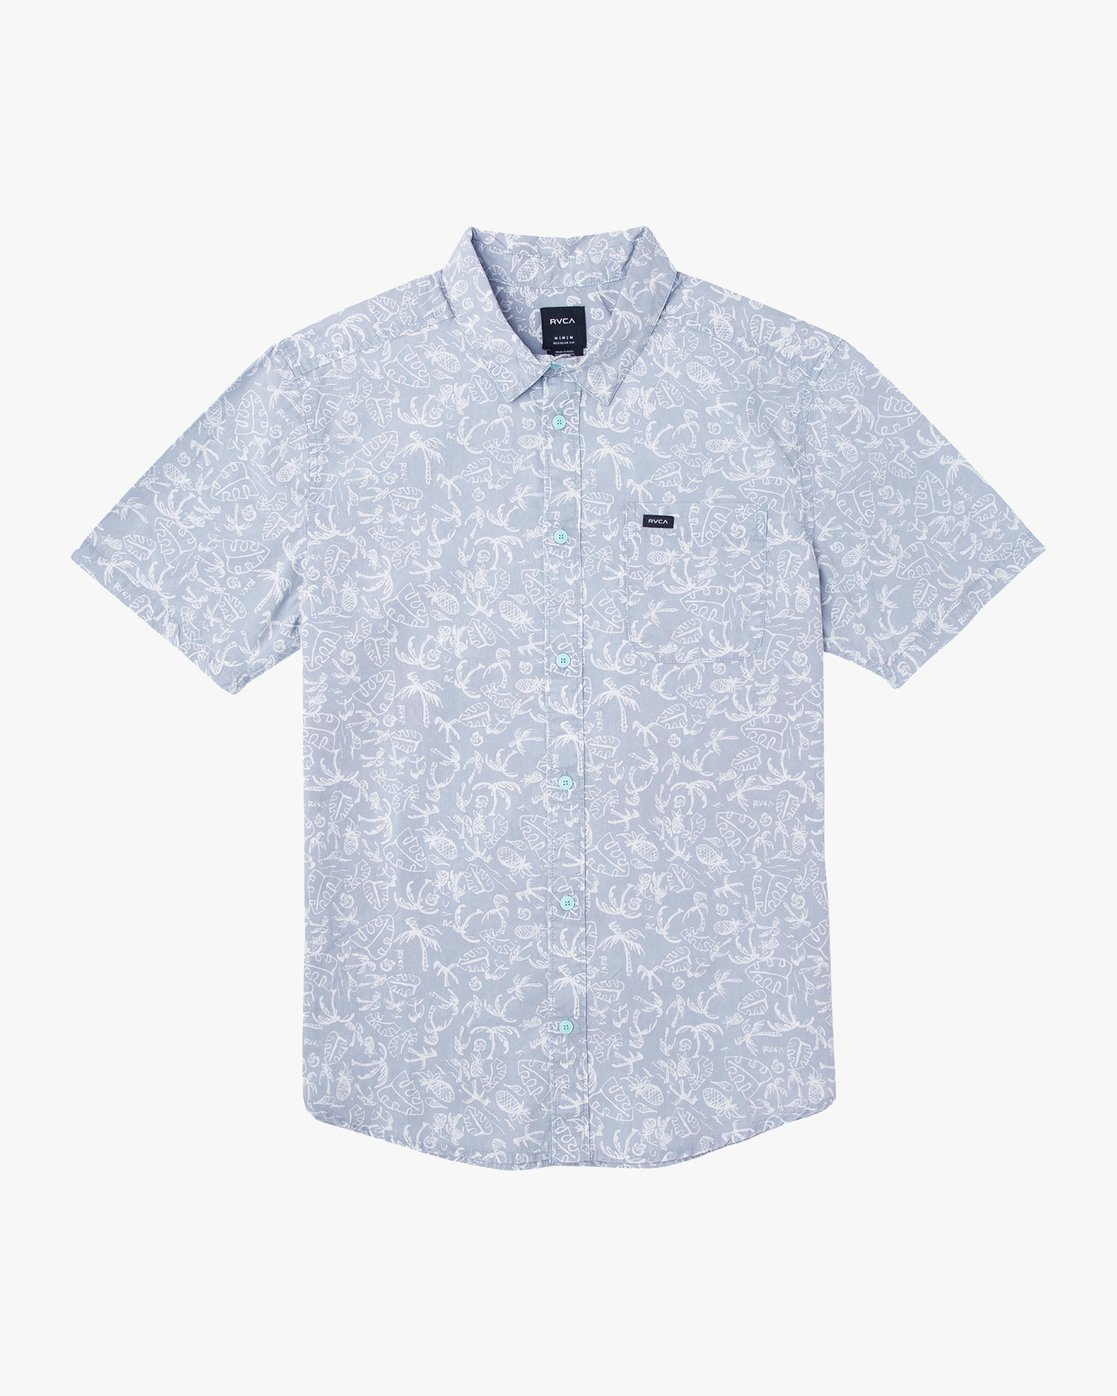 0 Sketchy Palms Button-Up Shirt Blue M572URSP RVCA